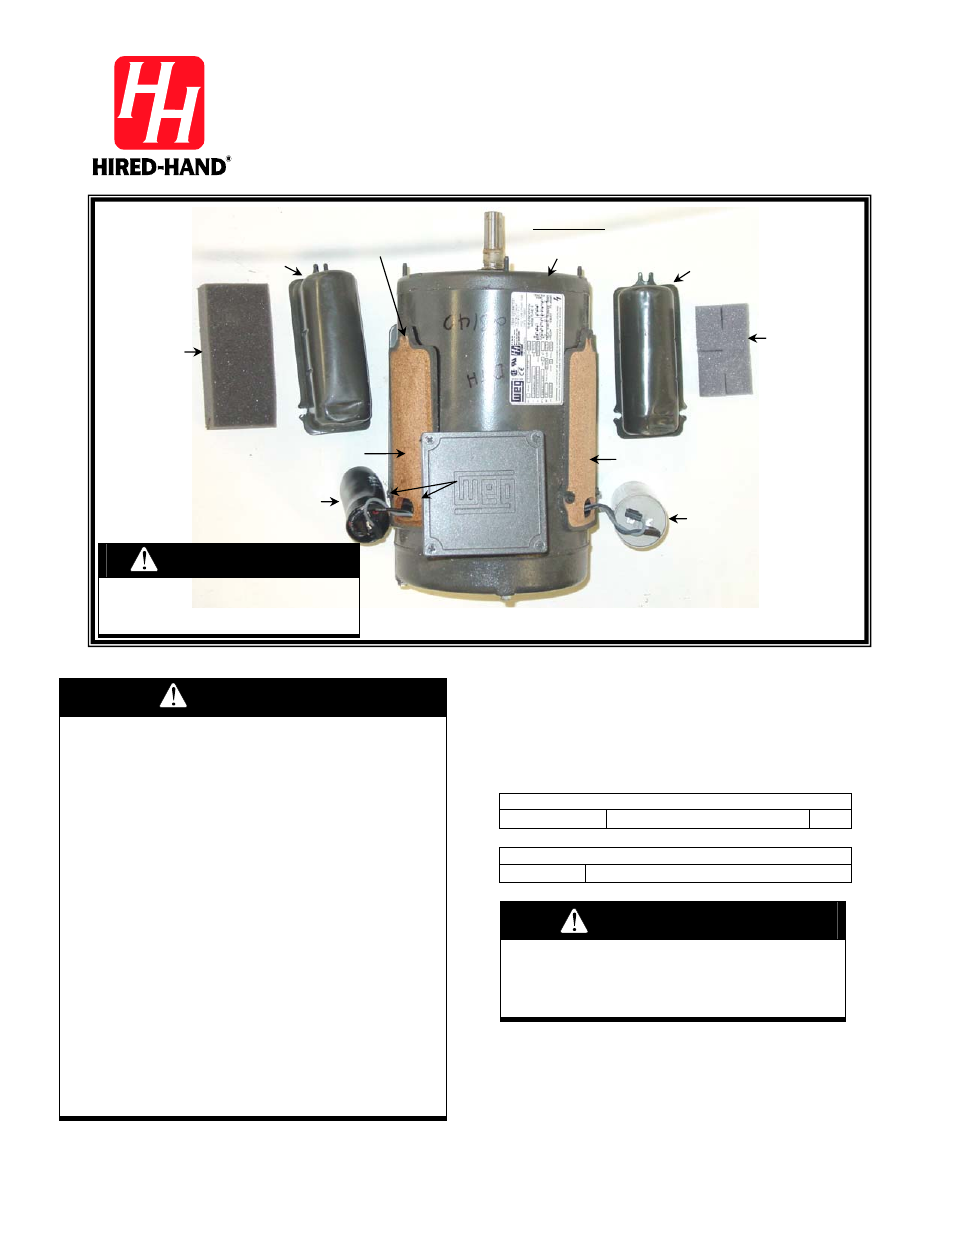 Hired Hand Mega Flow Slantwall Fans Fan Motor Start Capacitor User Connection Diagram As It Is A Manual 2 Pages Also For Funnel